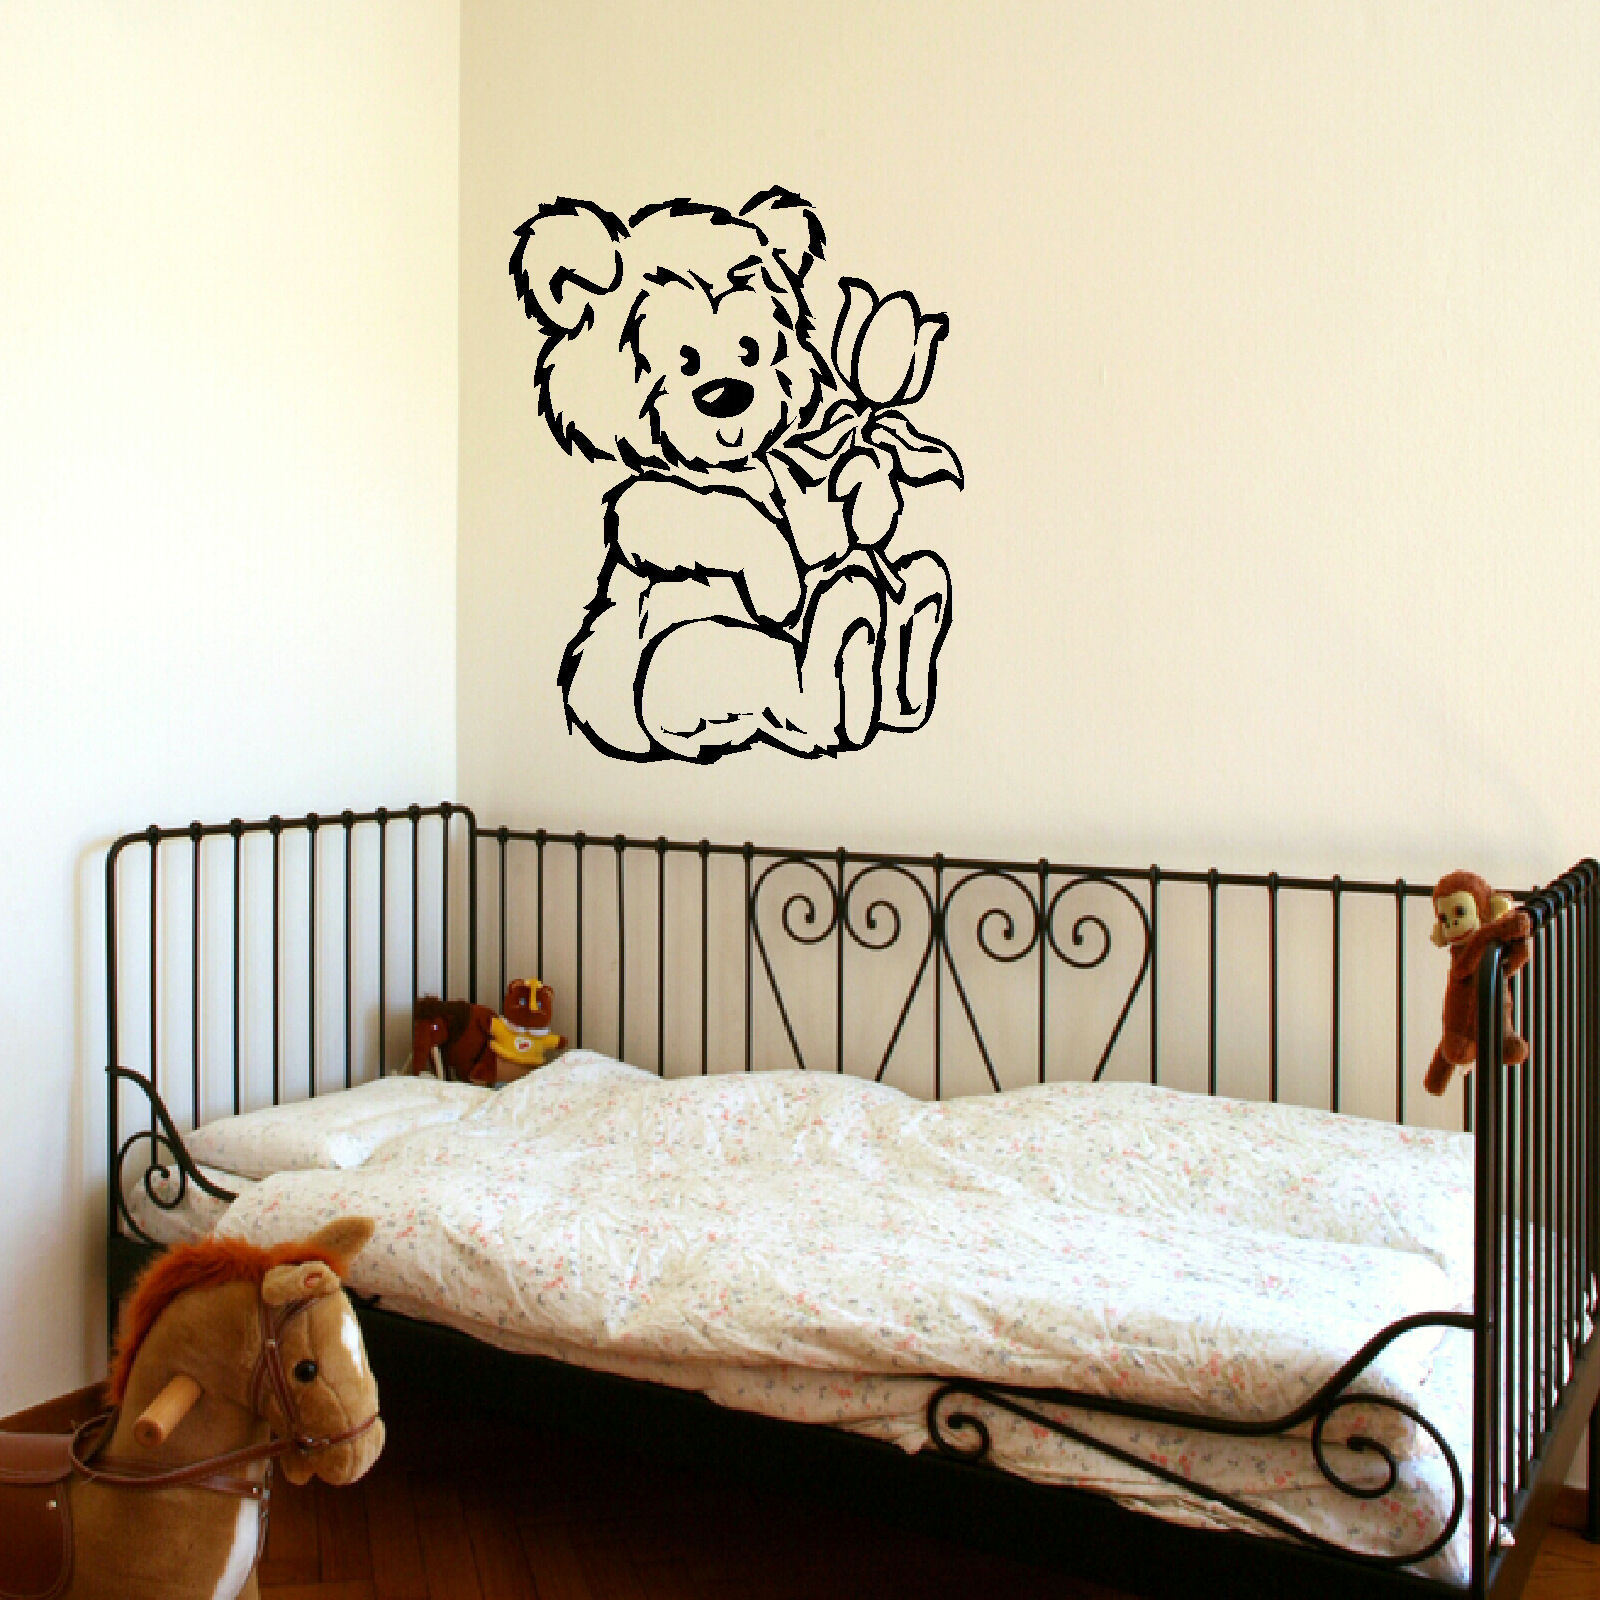 D9 LARGE NURSERY TEDDY BEAR BABY WALL ART STENCIL STICKER ...